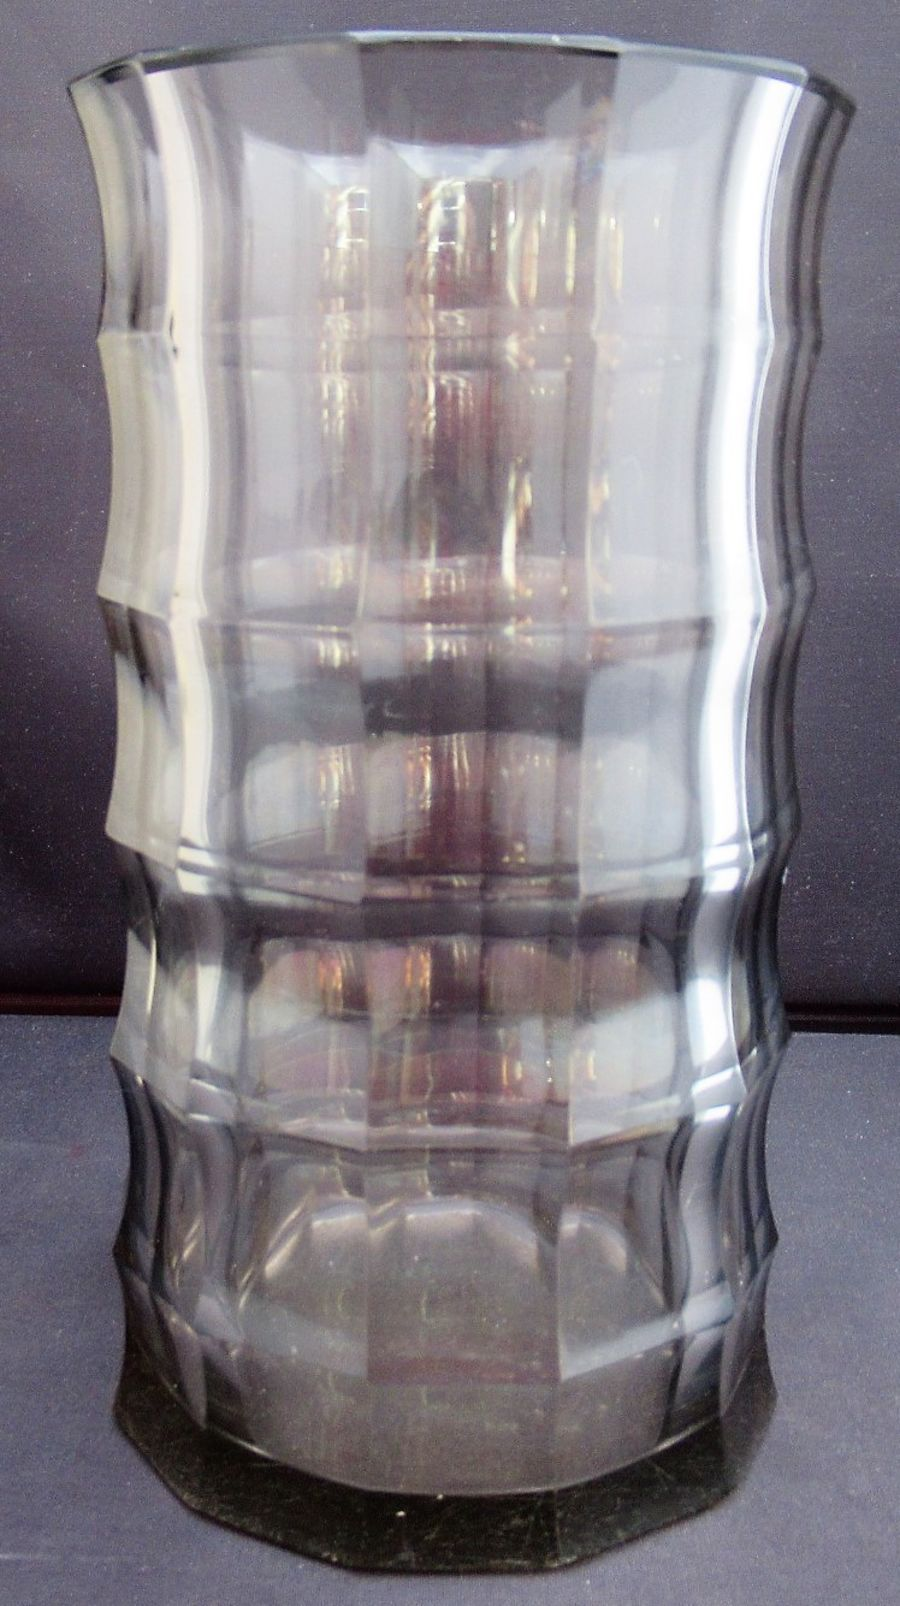 Faceted glass vase, c1920, manner of Josef Hoffmann and Wiener Werkstatte